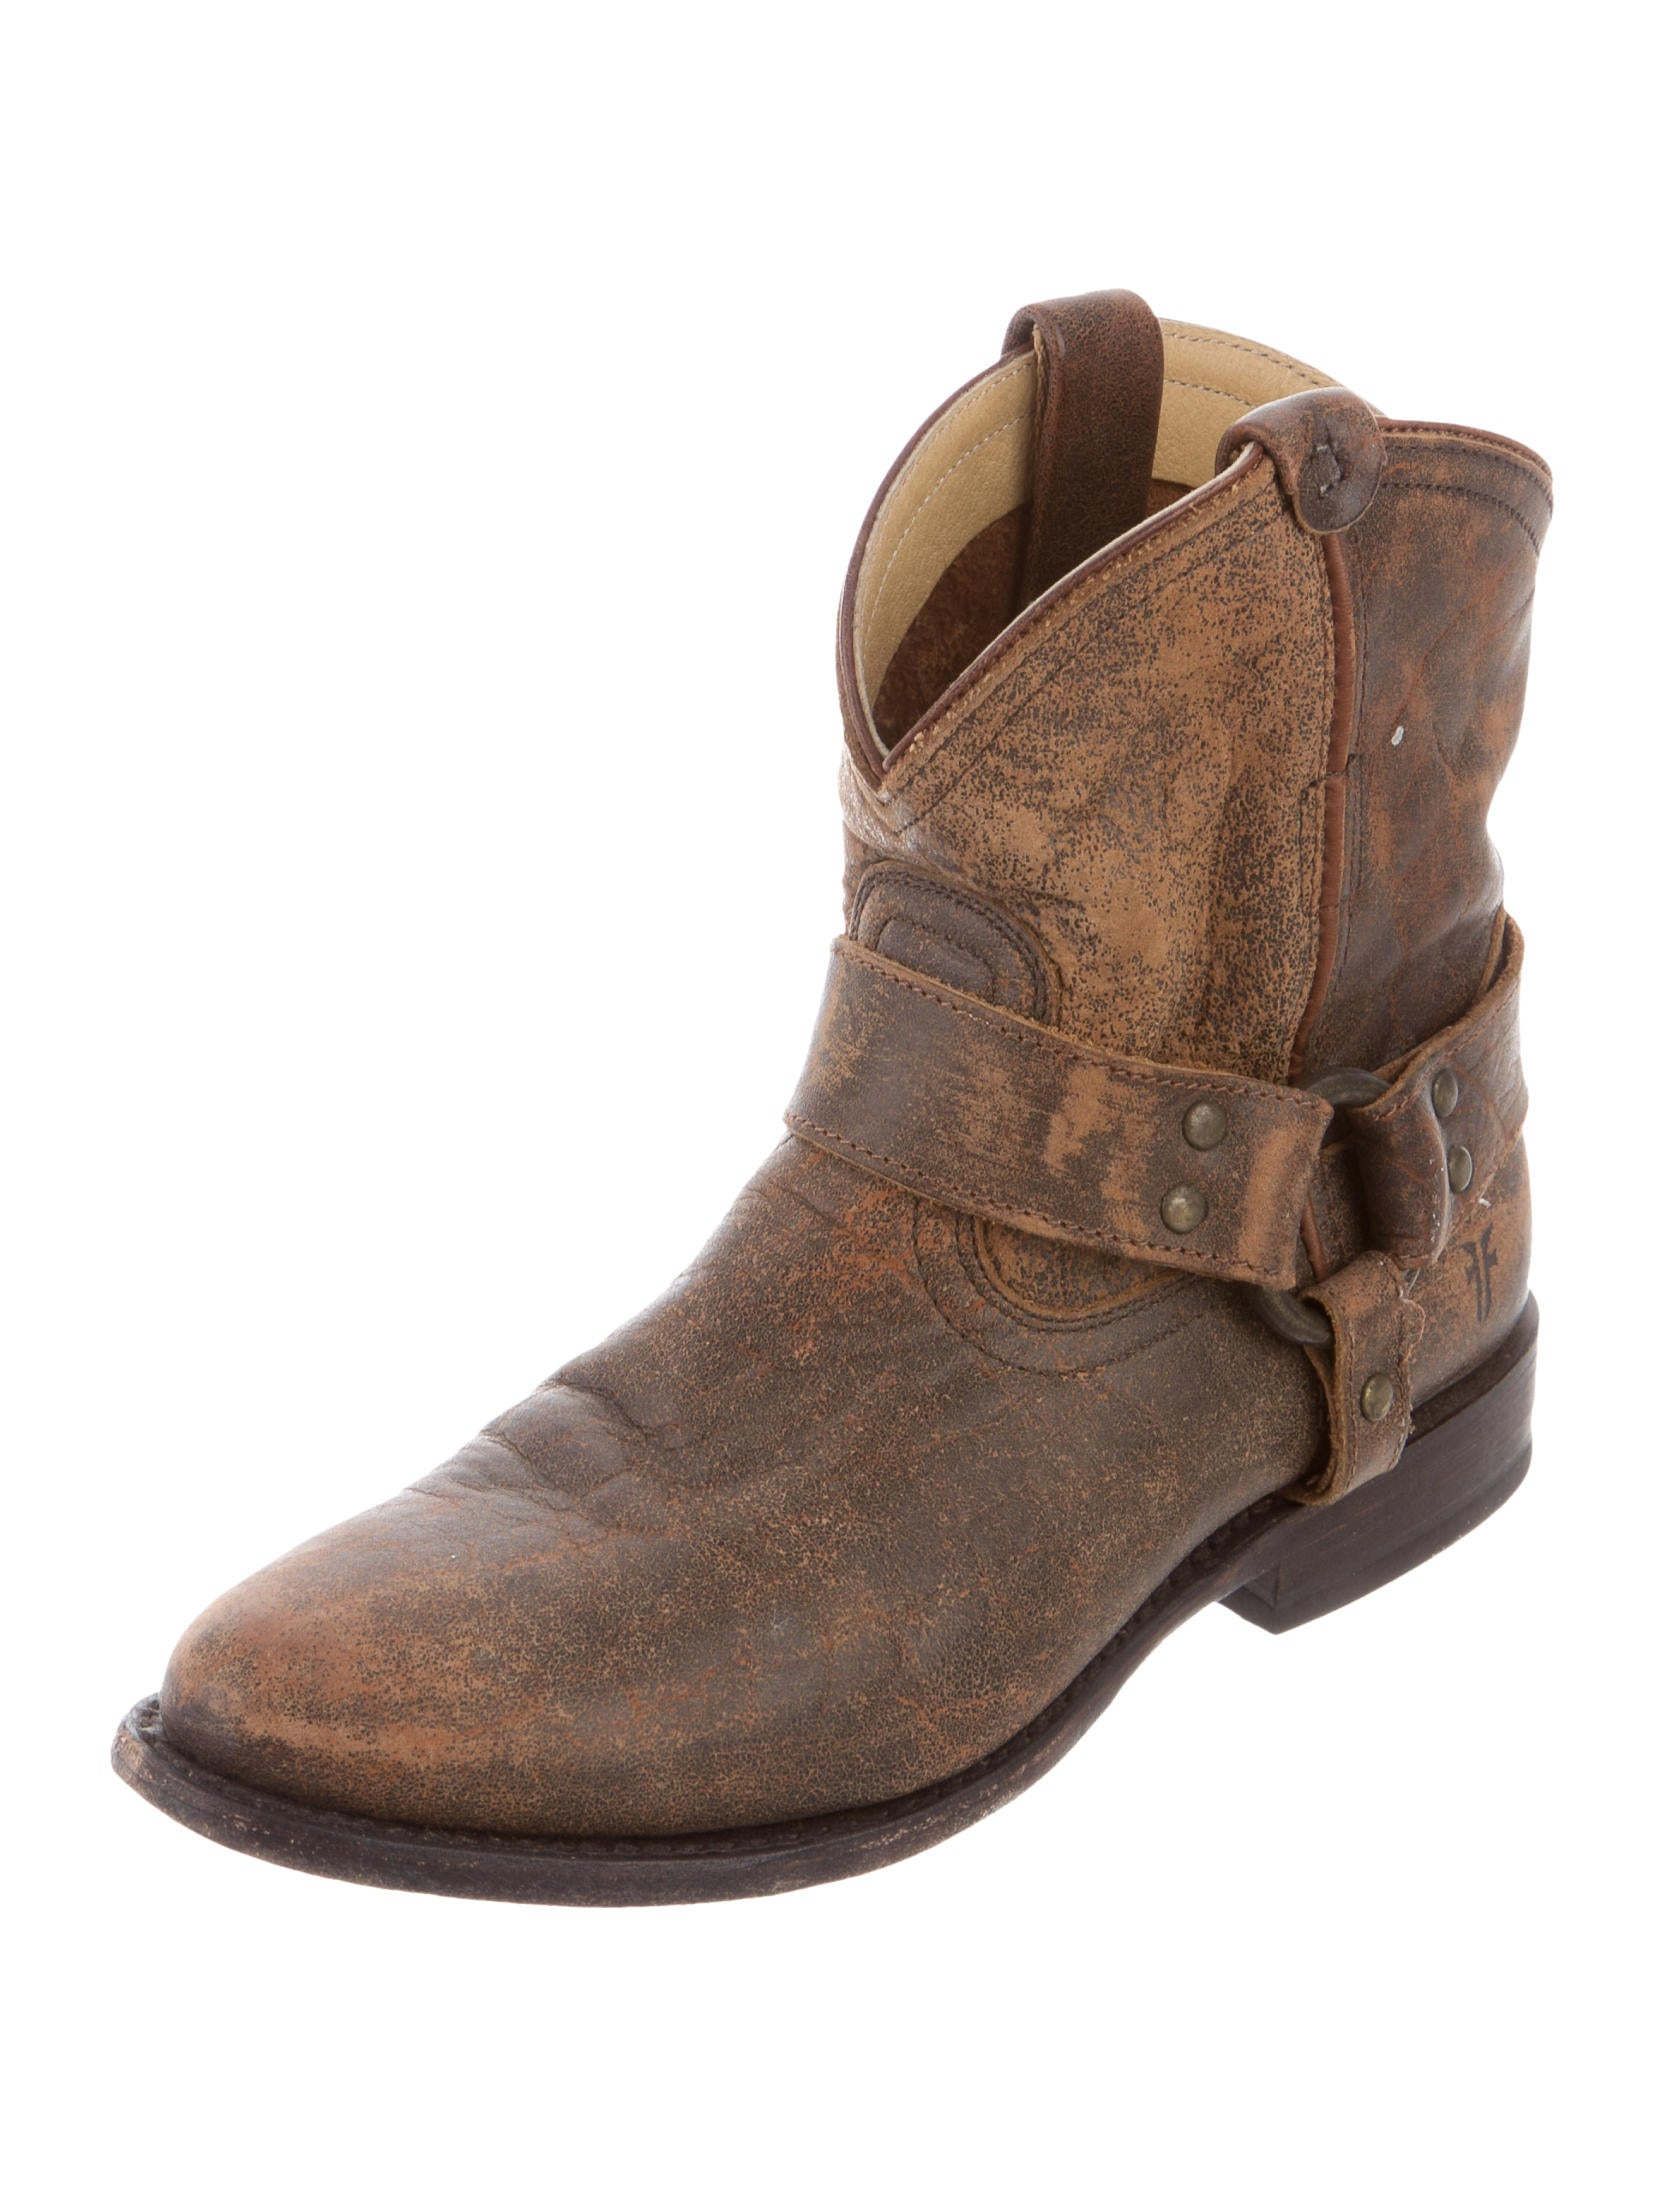 frye distressed leather ankle boots shoes wf821099